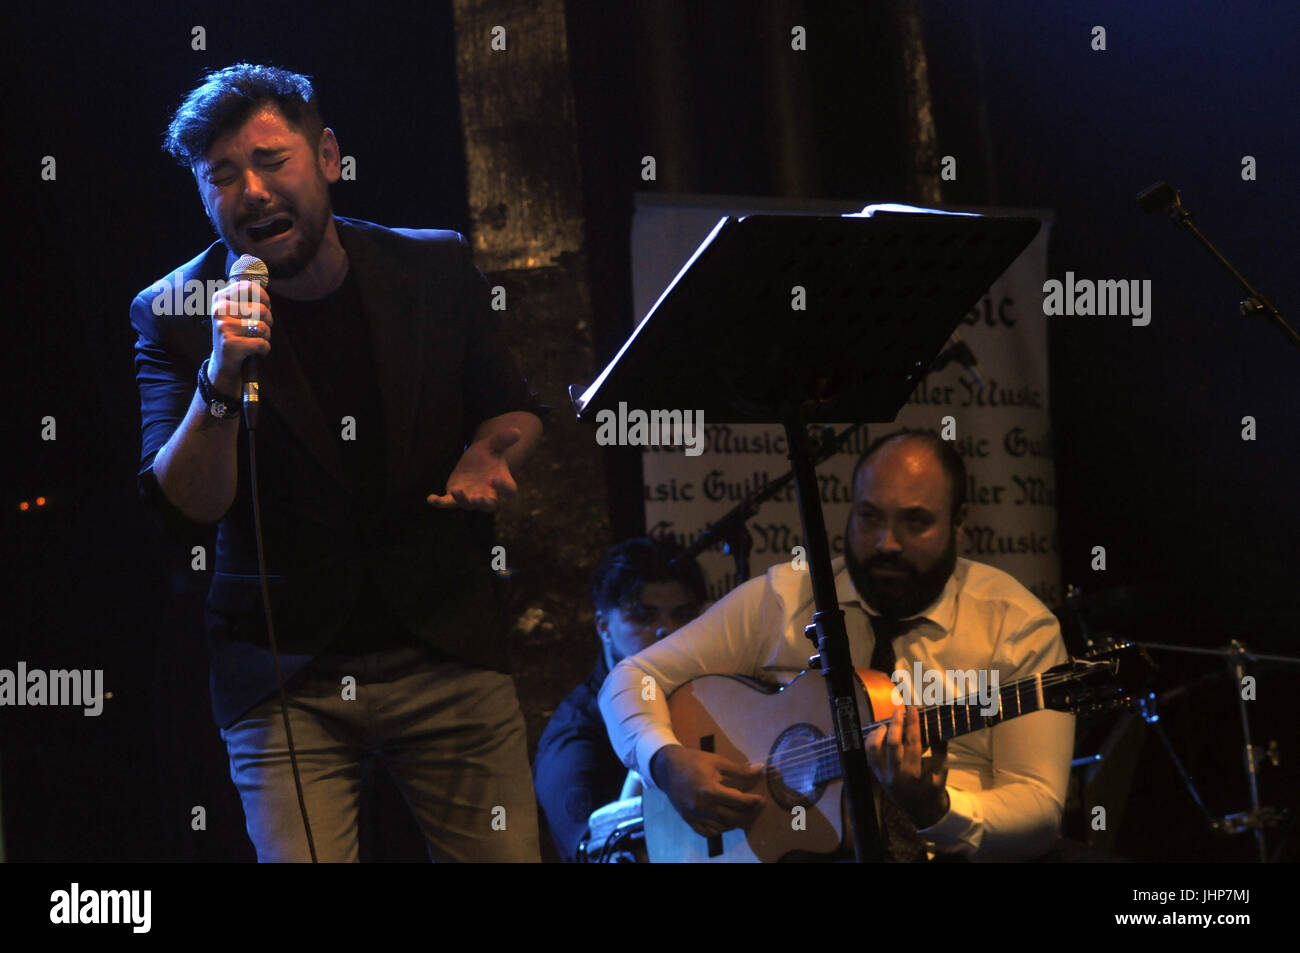 25th november 2016. Barcelona Spain. VI Flamenco and Other Birds Edition. Show ALL PARRITA, with invited artists: - Stock Image